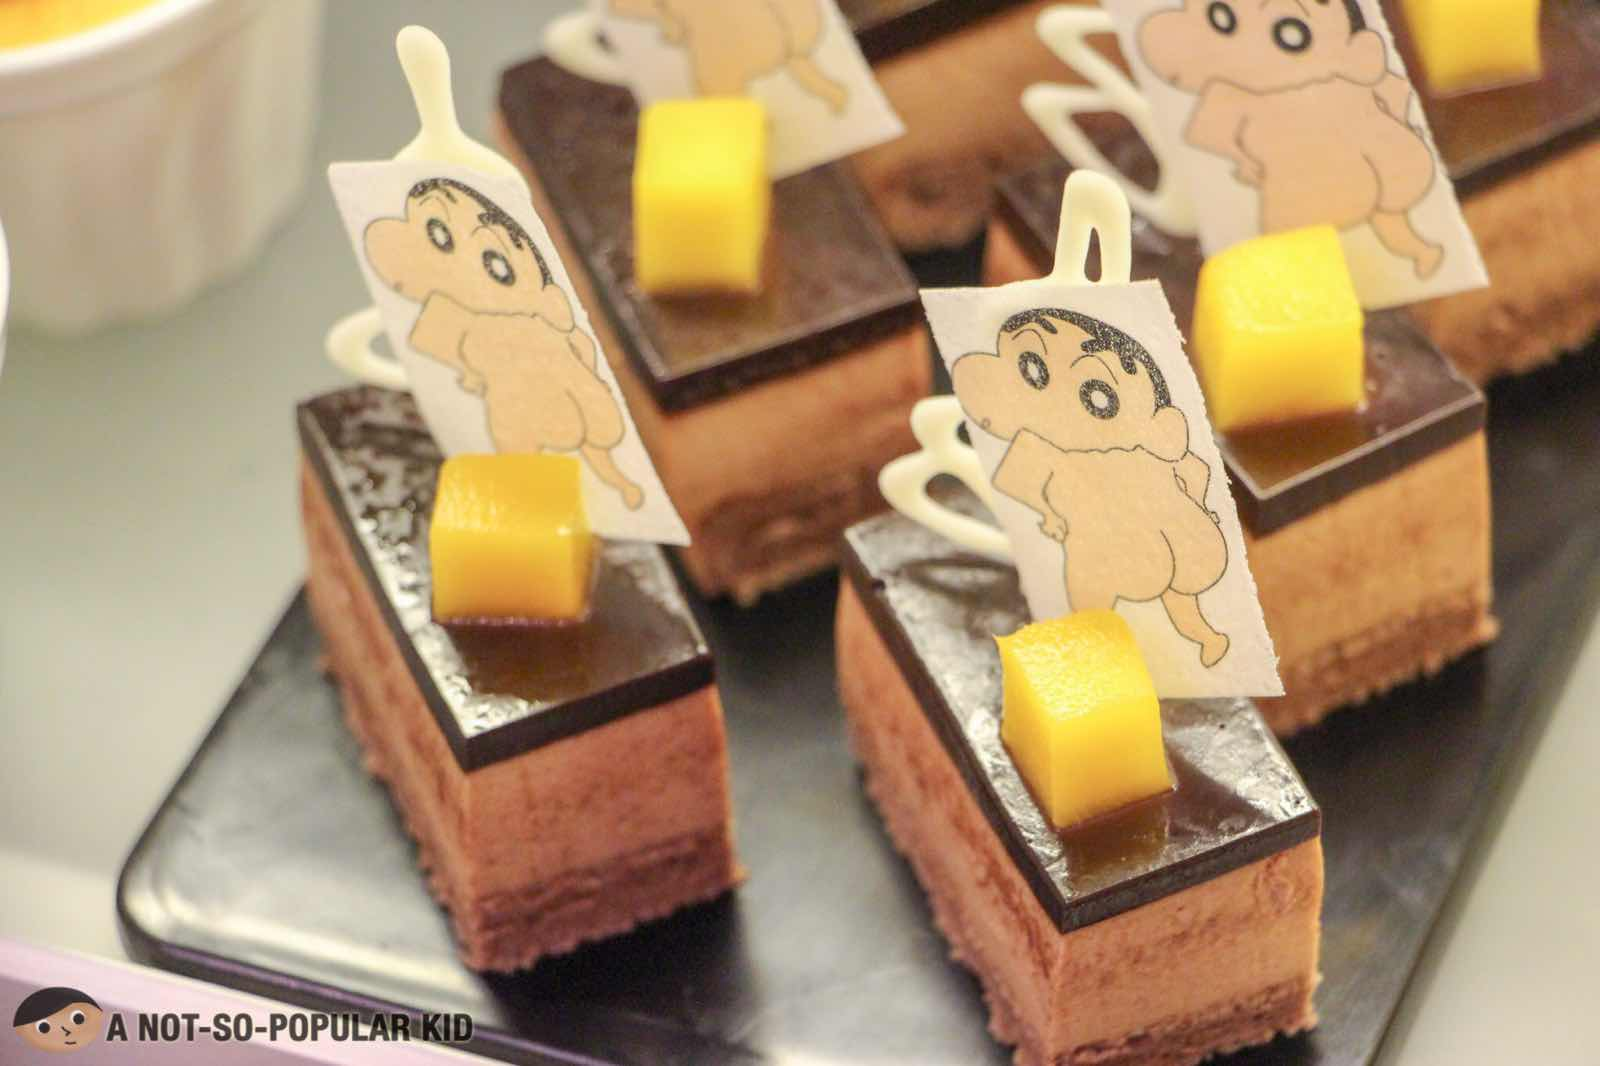 Shin Chan novelty cakes in Six Doors